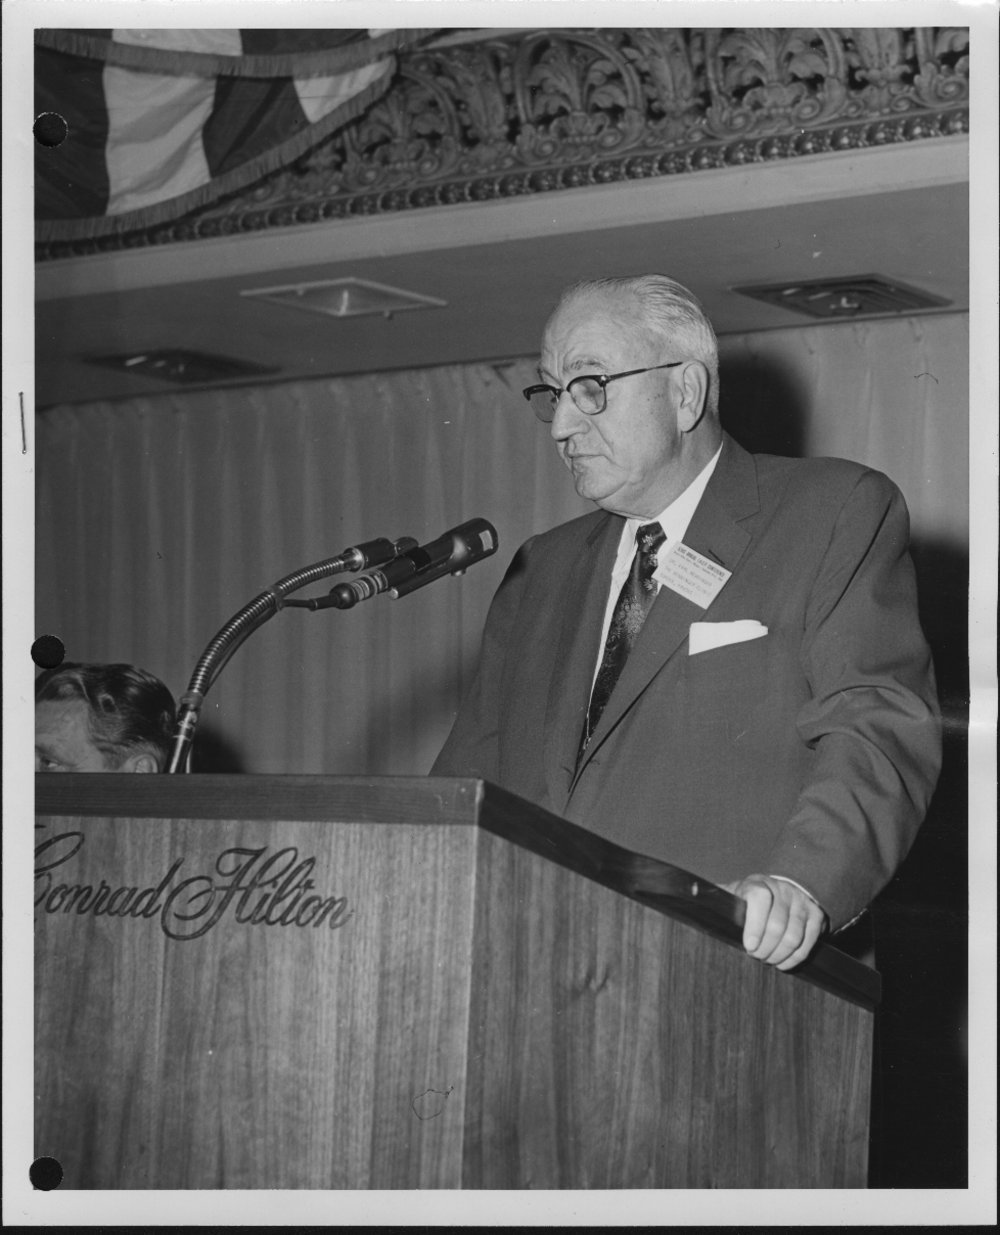 Dr. Karl Menninger - Dr. Karl is speaking to a meeting of the International Association of Chiefs of Police, held in Chicago, Ill., September 11, 1956.